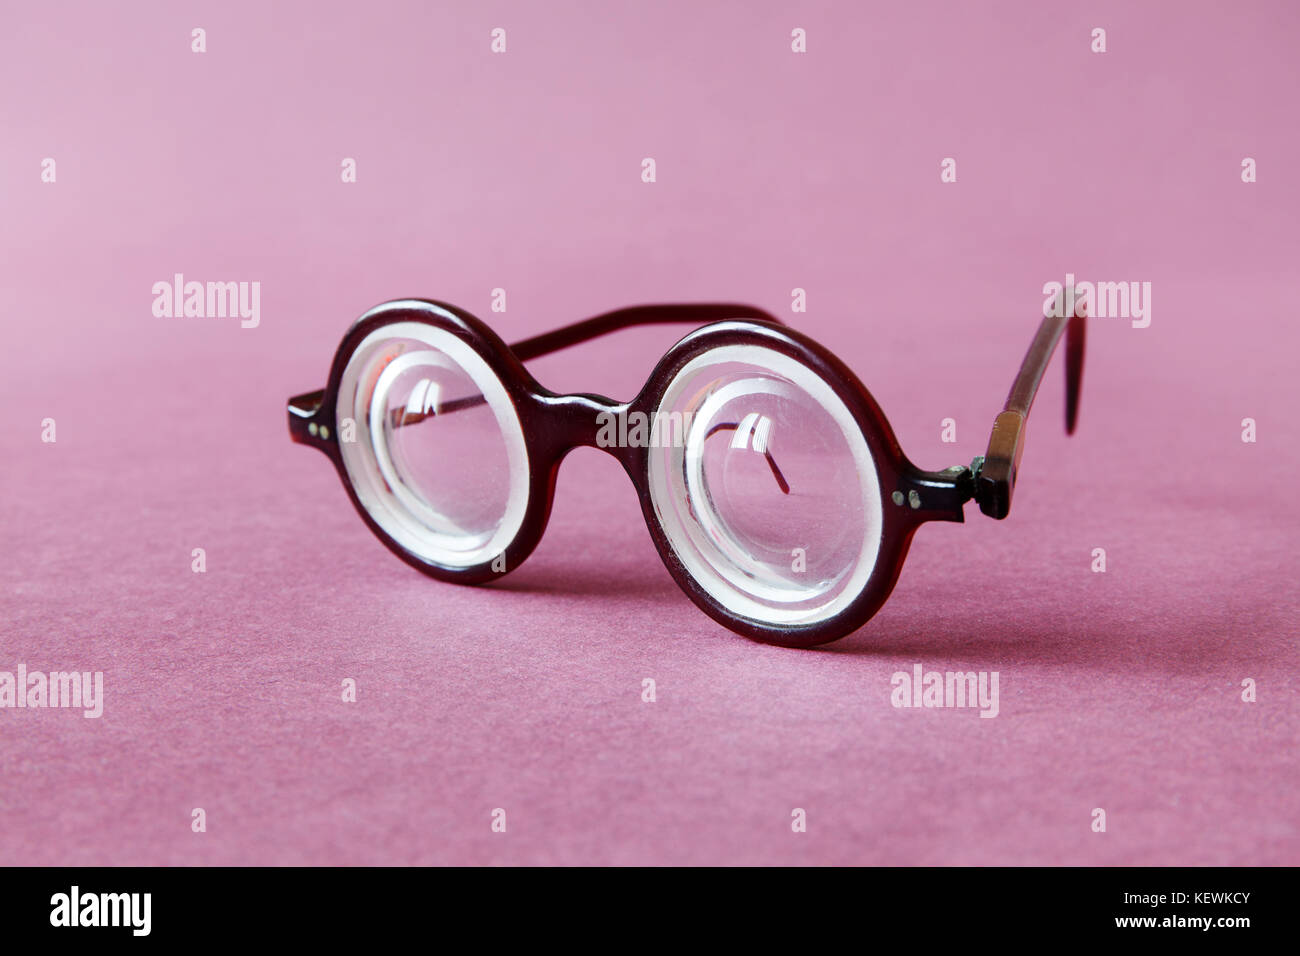 Old fashion design spectacles eyeglasses on pink violet paper background. Vintage style men fashion accessories Stock Photo